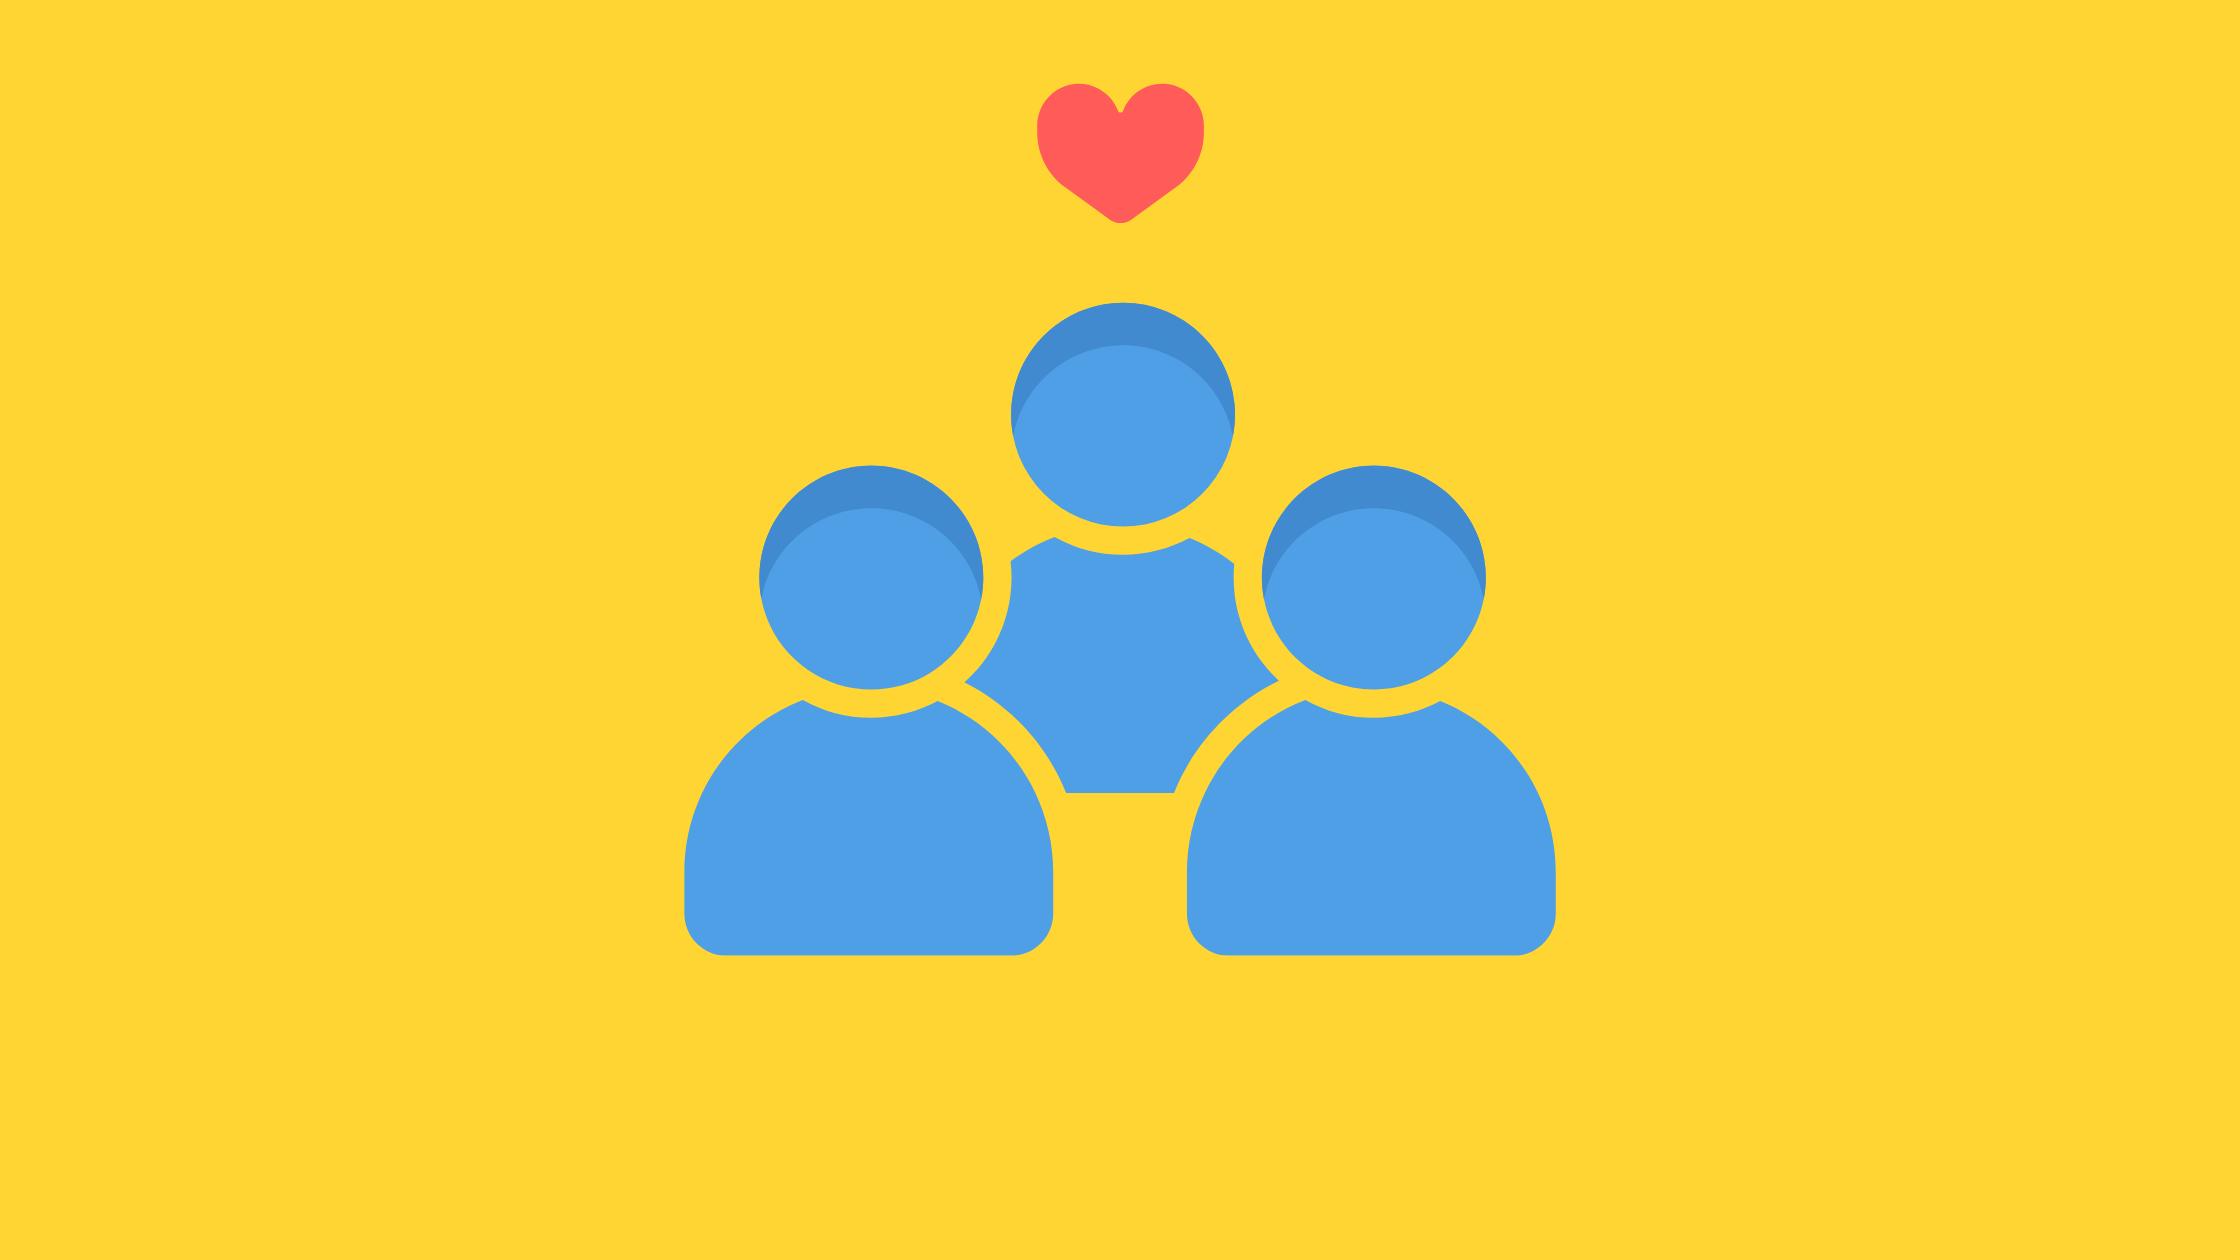 three blue figures with a red heart above them on a yellow background meant to show care for library staff